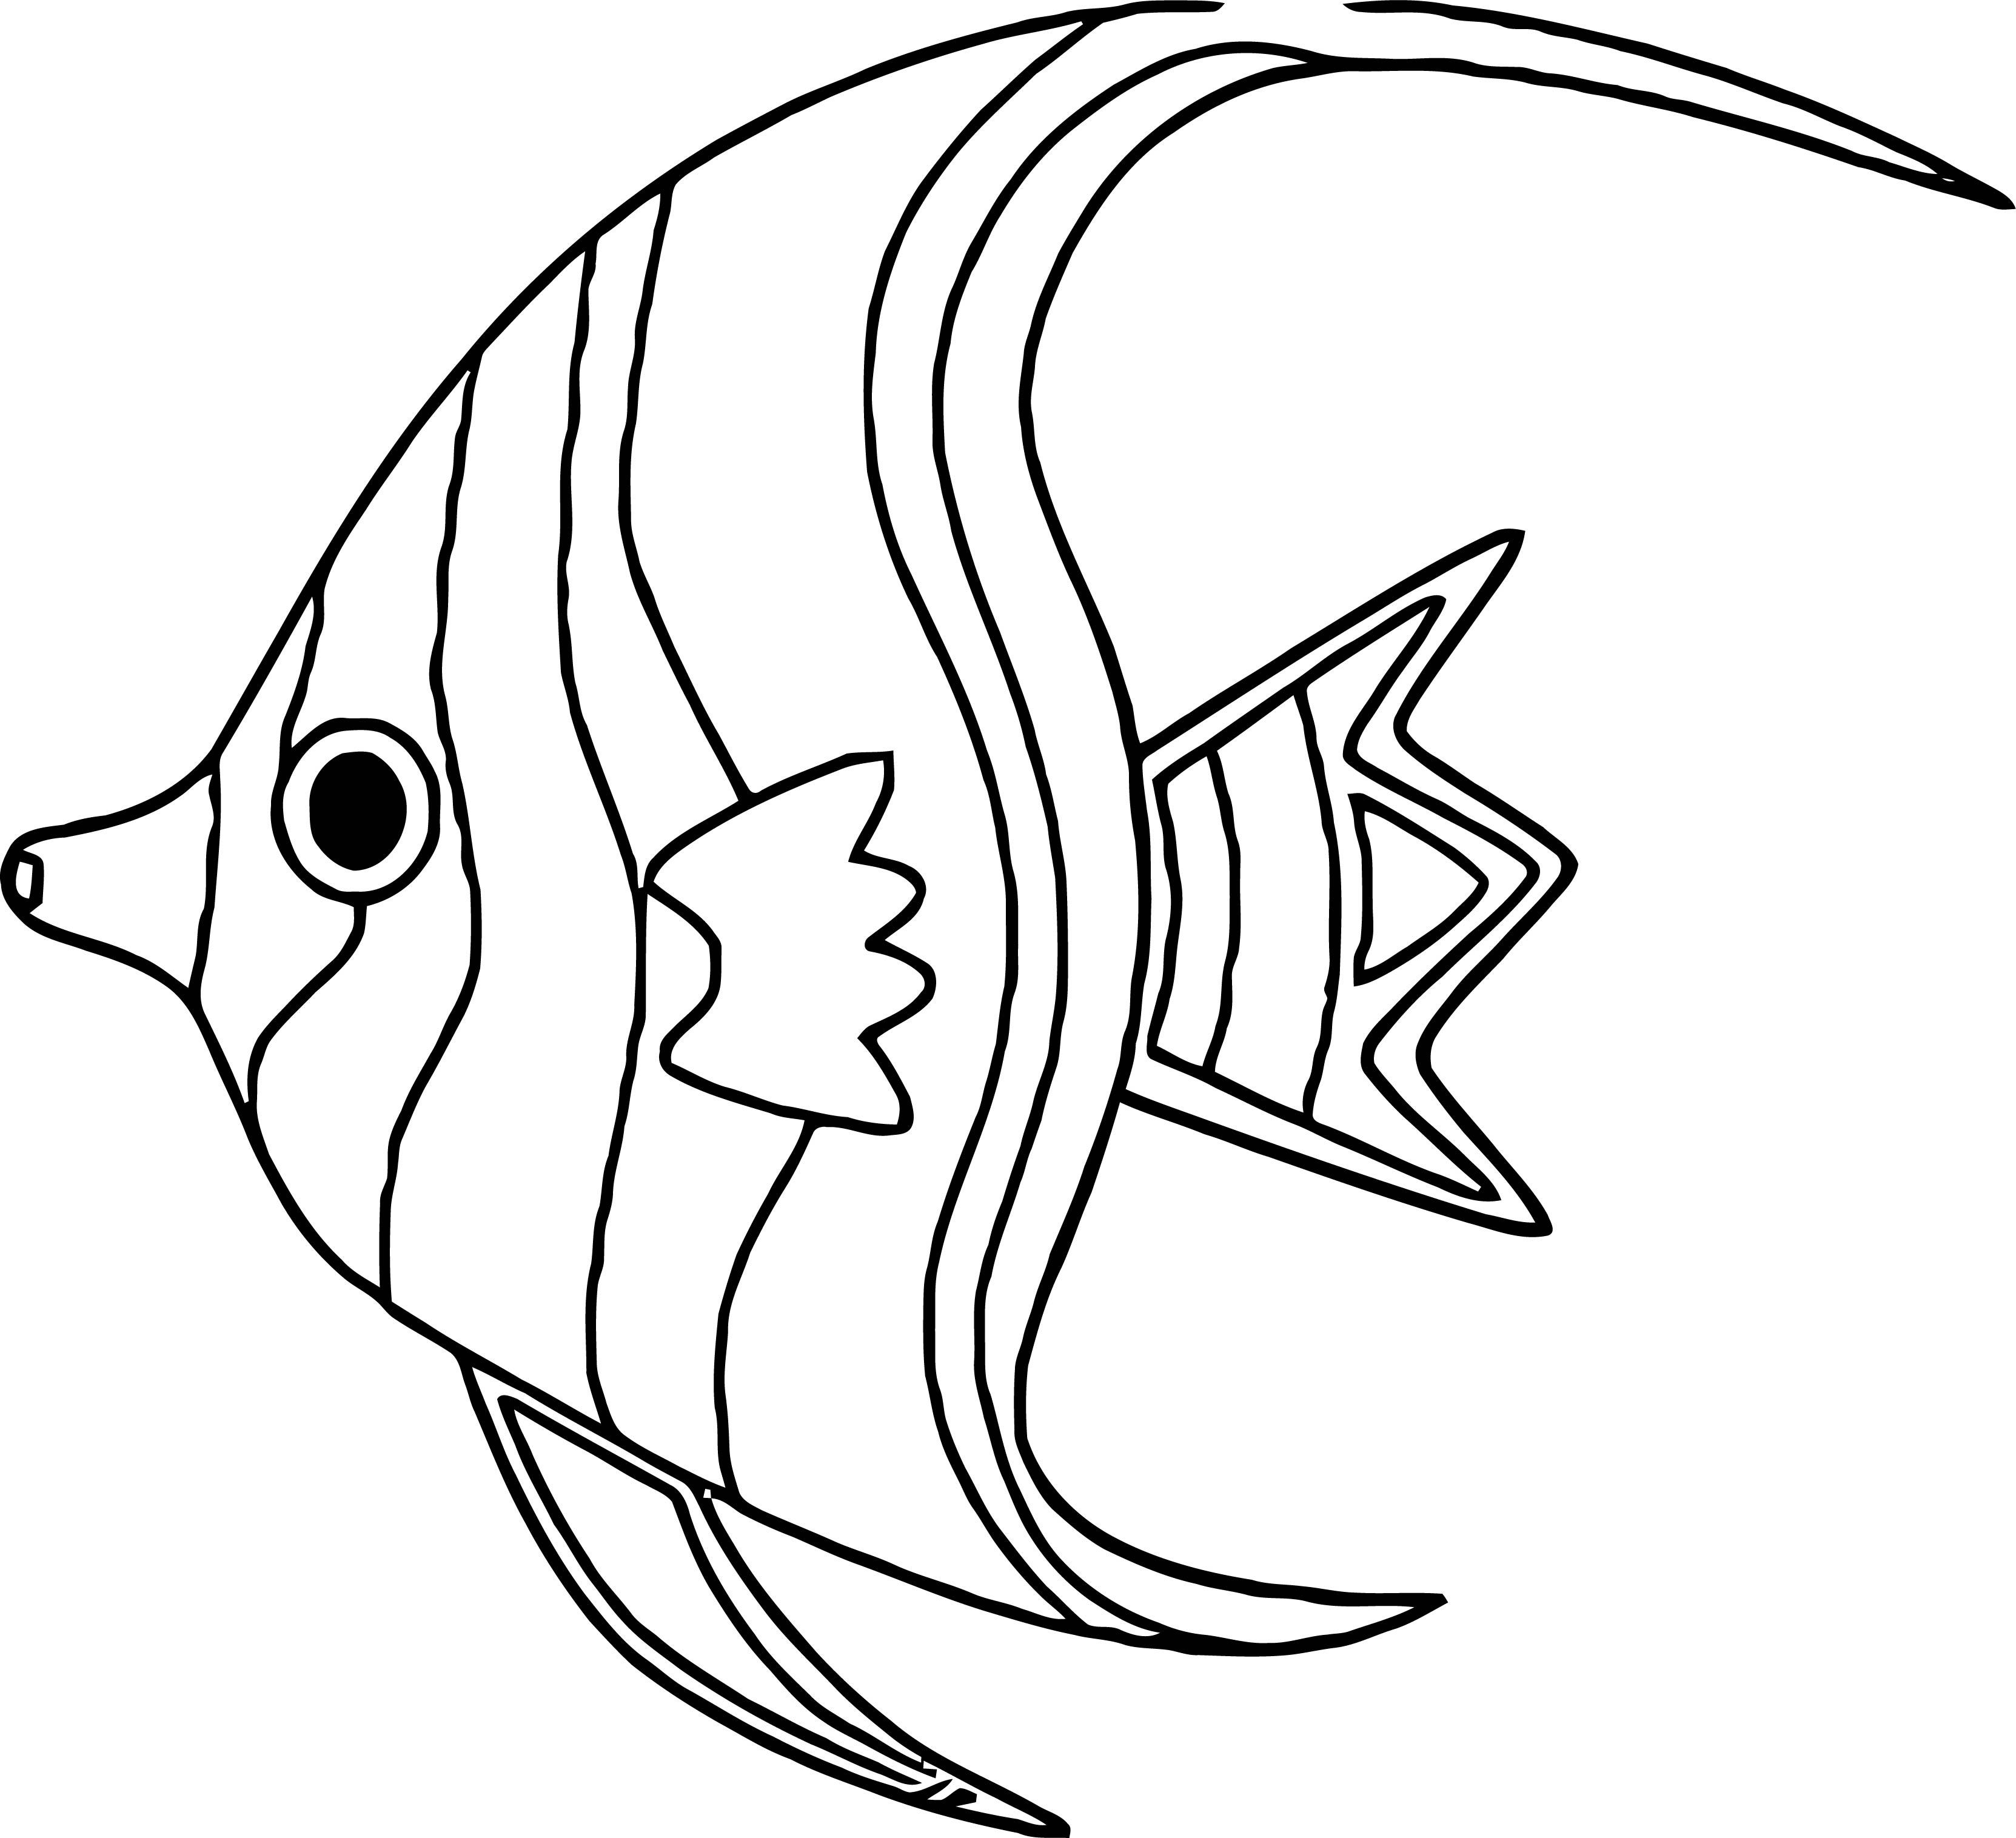 Fish Coloring Page Wecoloringpage 037